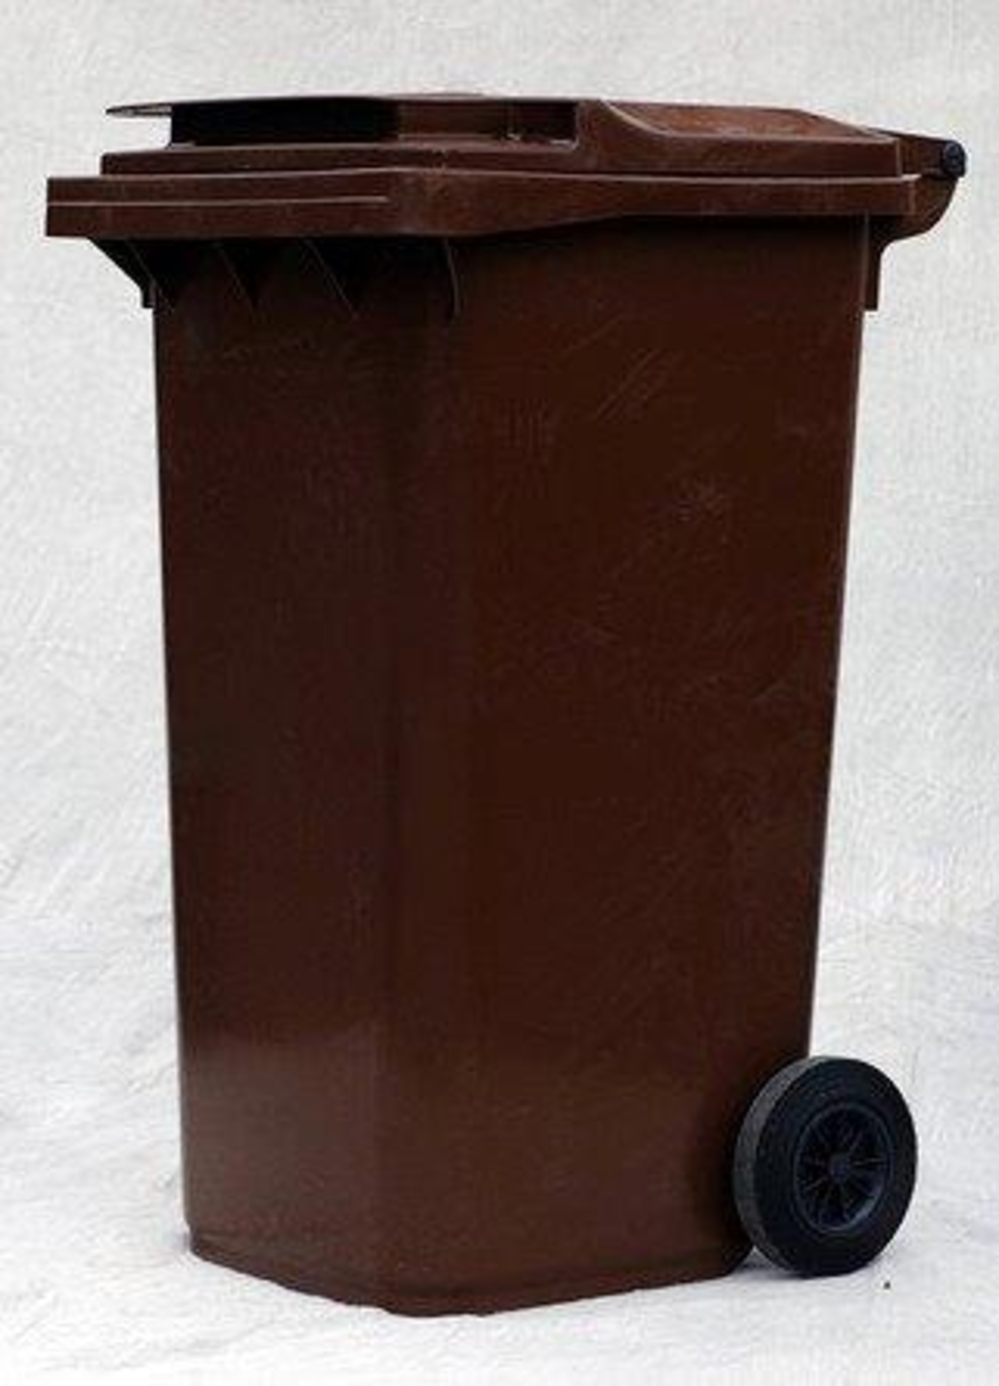 Photograph Of A Brown Wheelie Bin